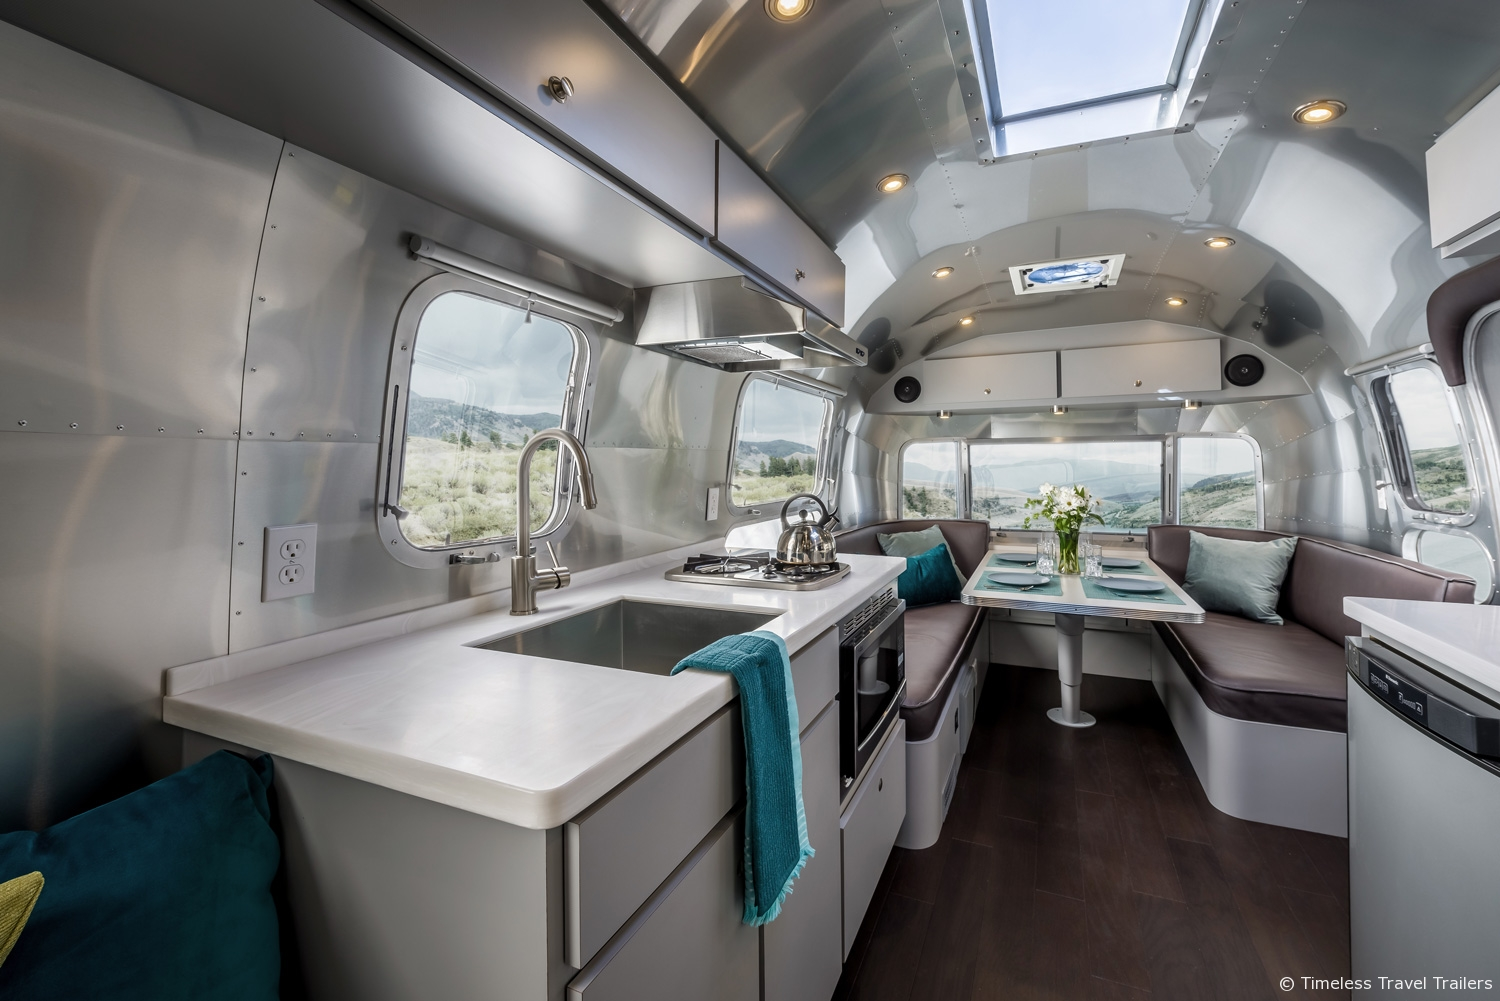 Modern Kansas Airstream by Timeless Travel Trailers